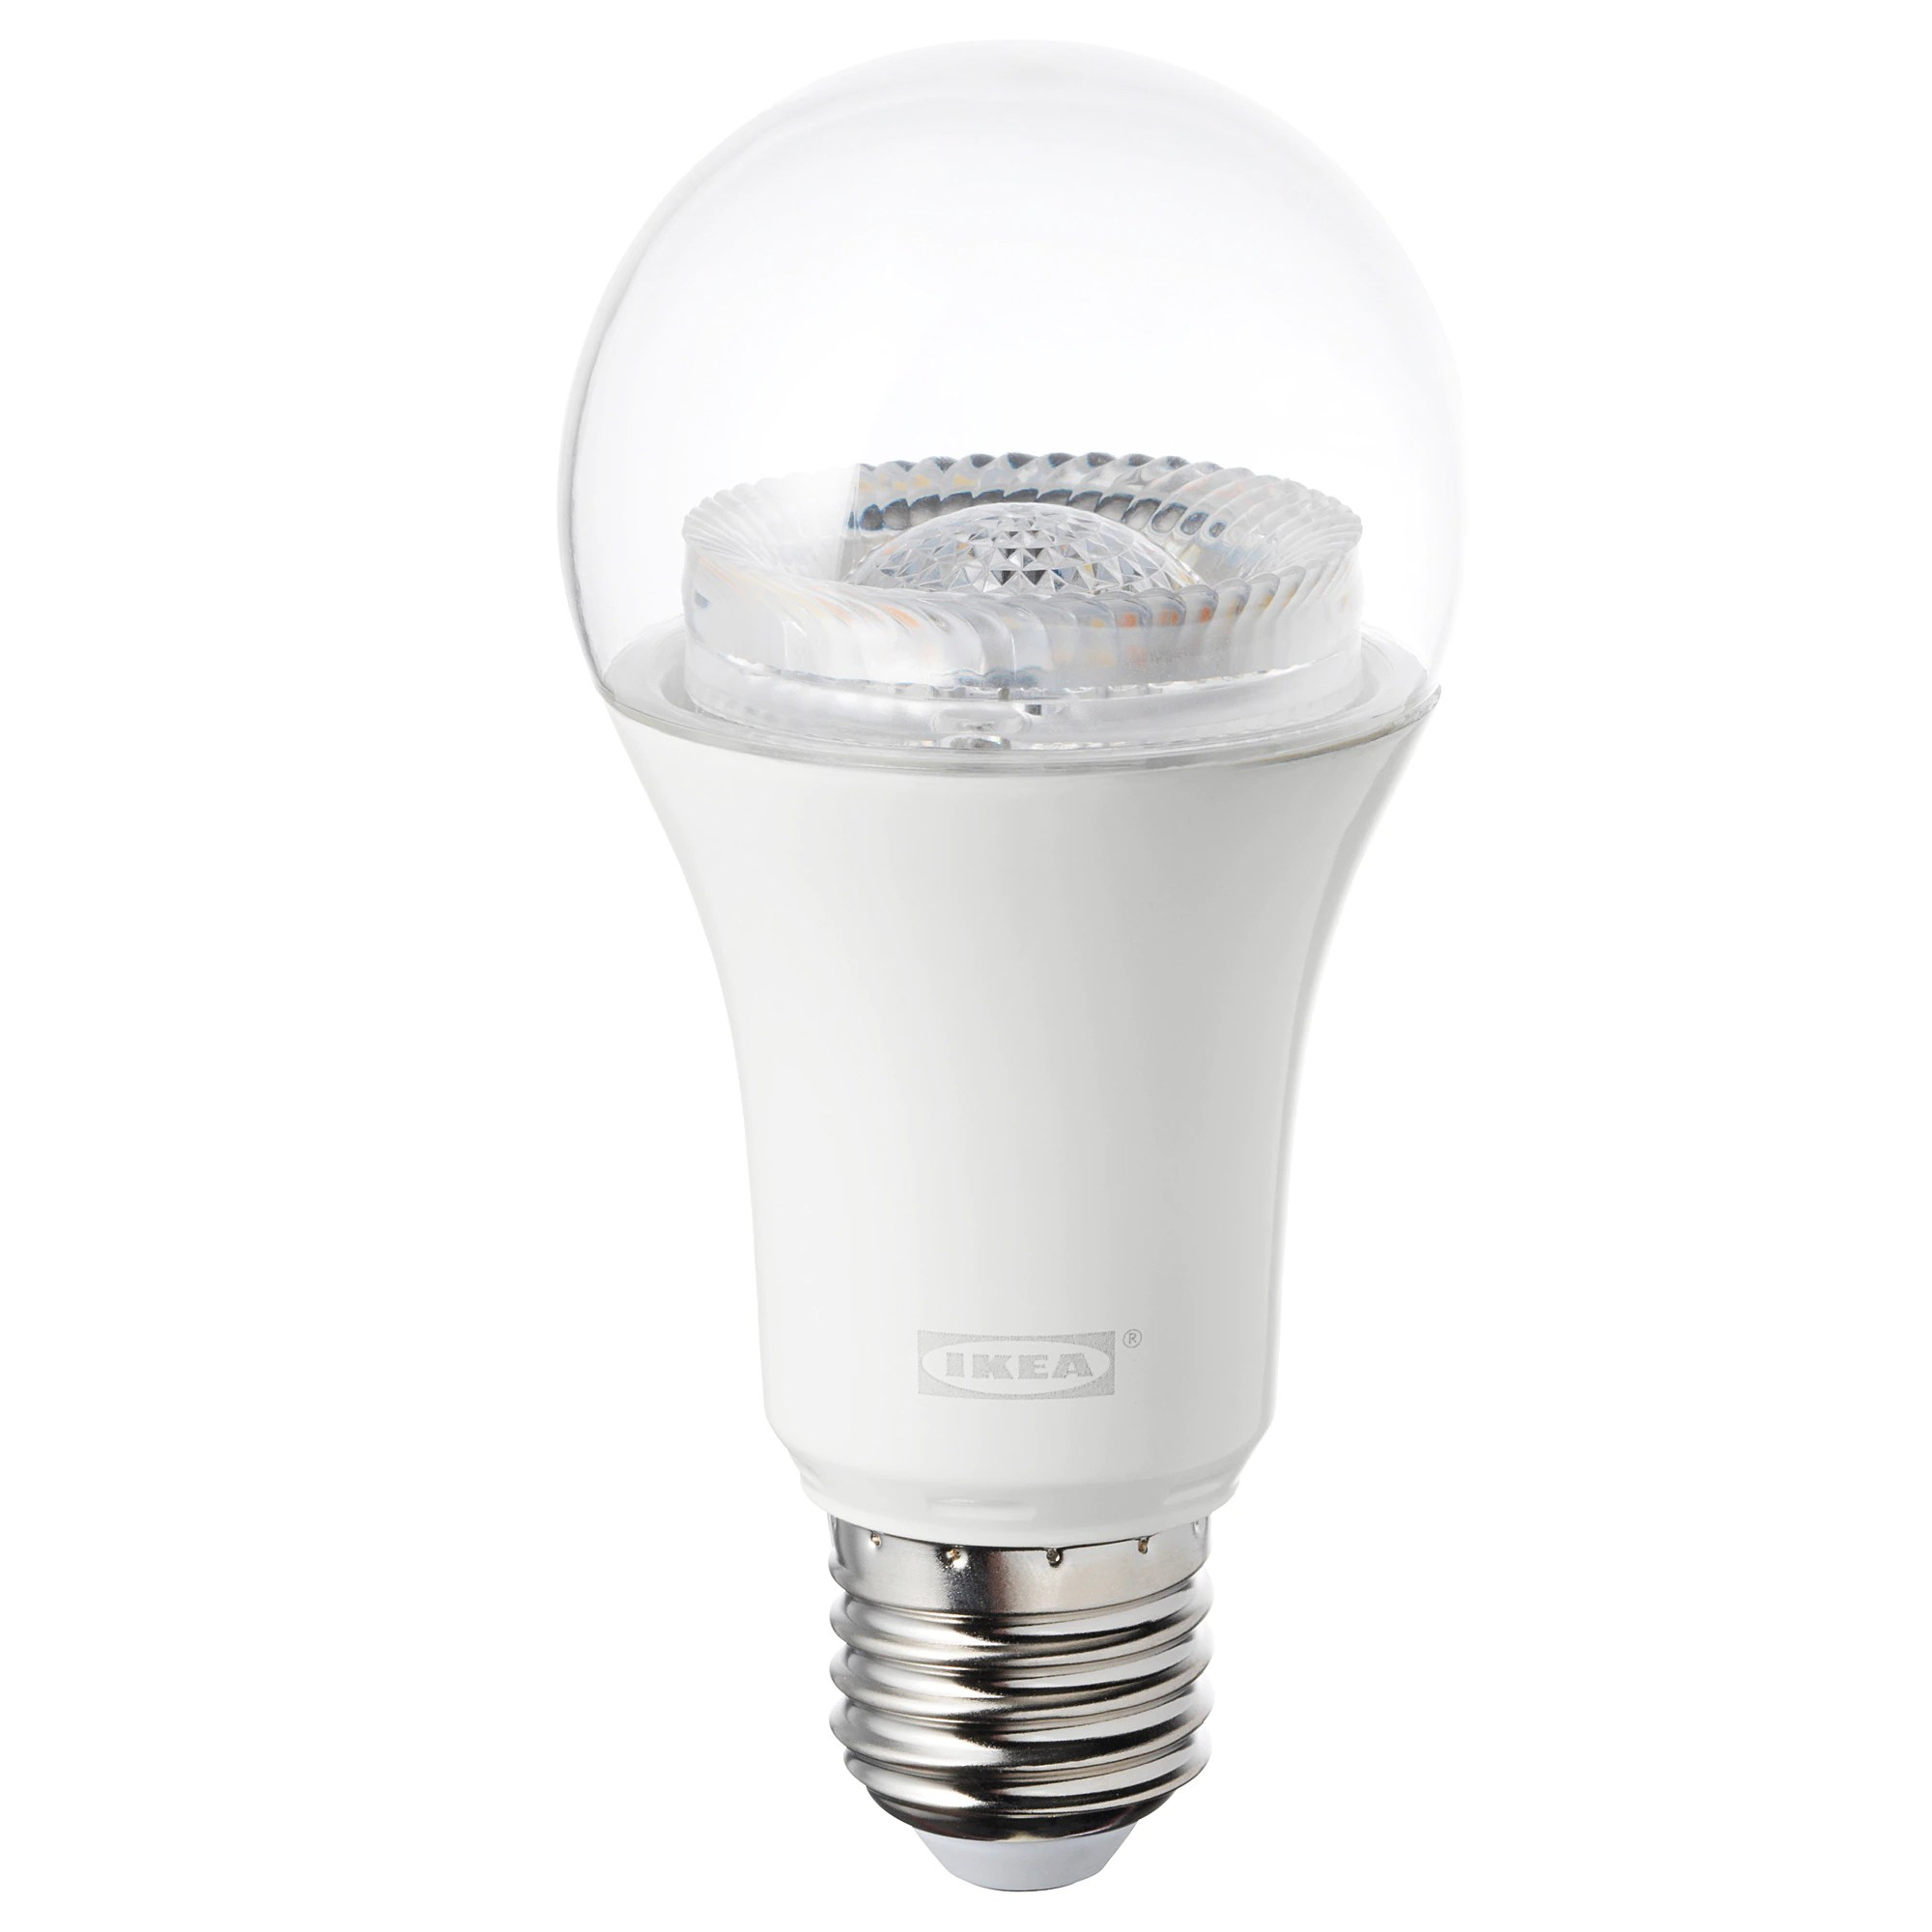 Smart Led Bulb TrÅdfri Led Bulb E26 950 Lumen Wireless Dimmable White Spectrum Clear